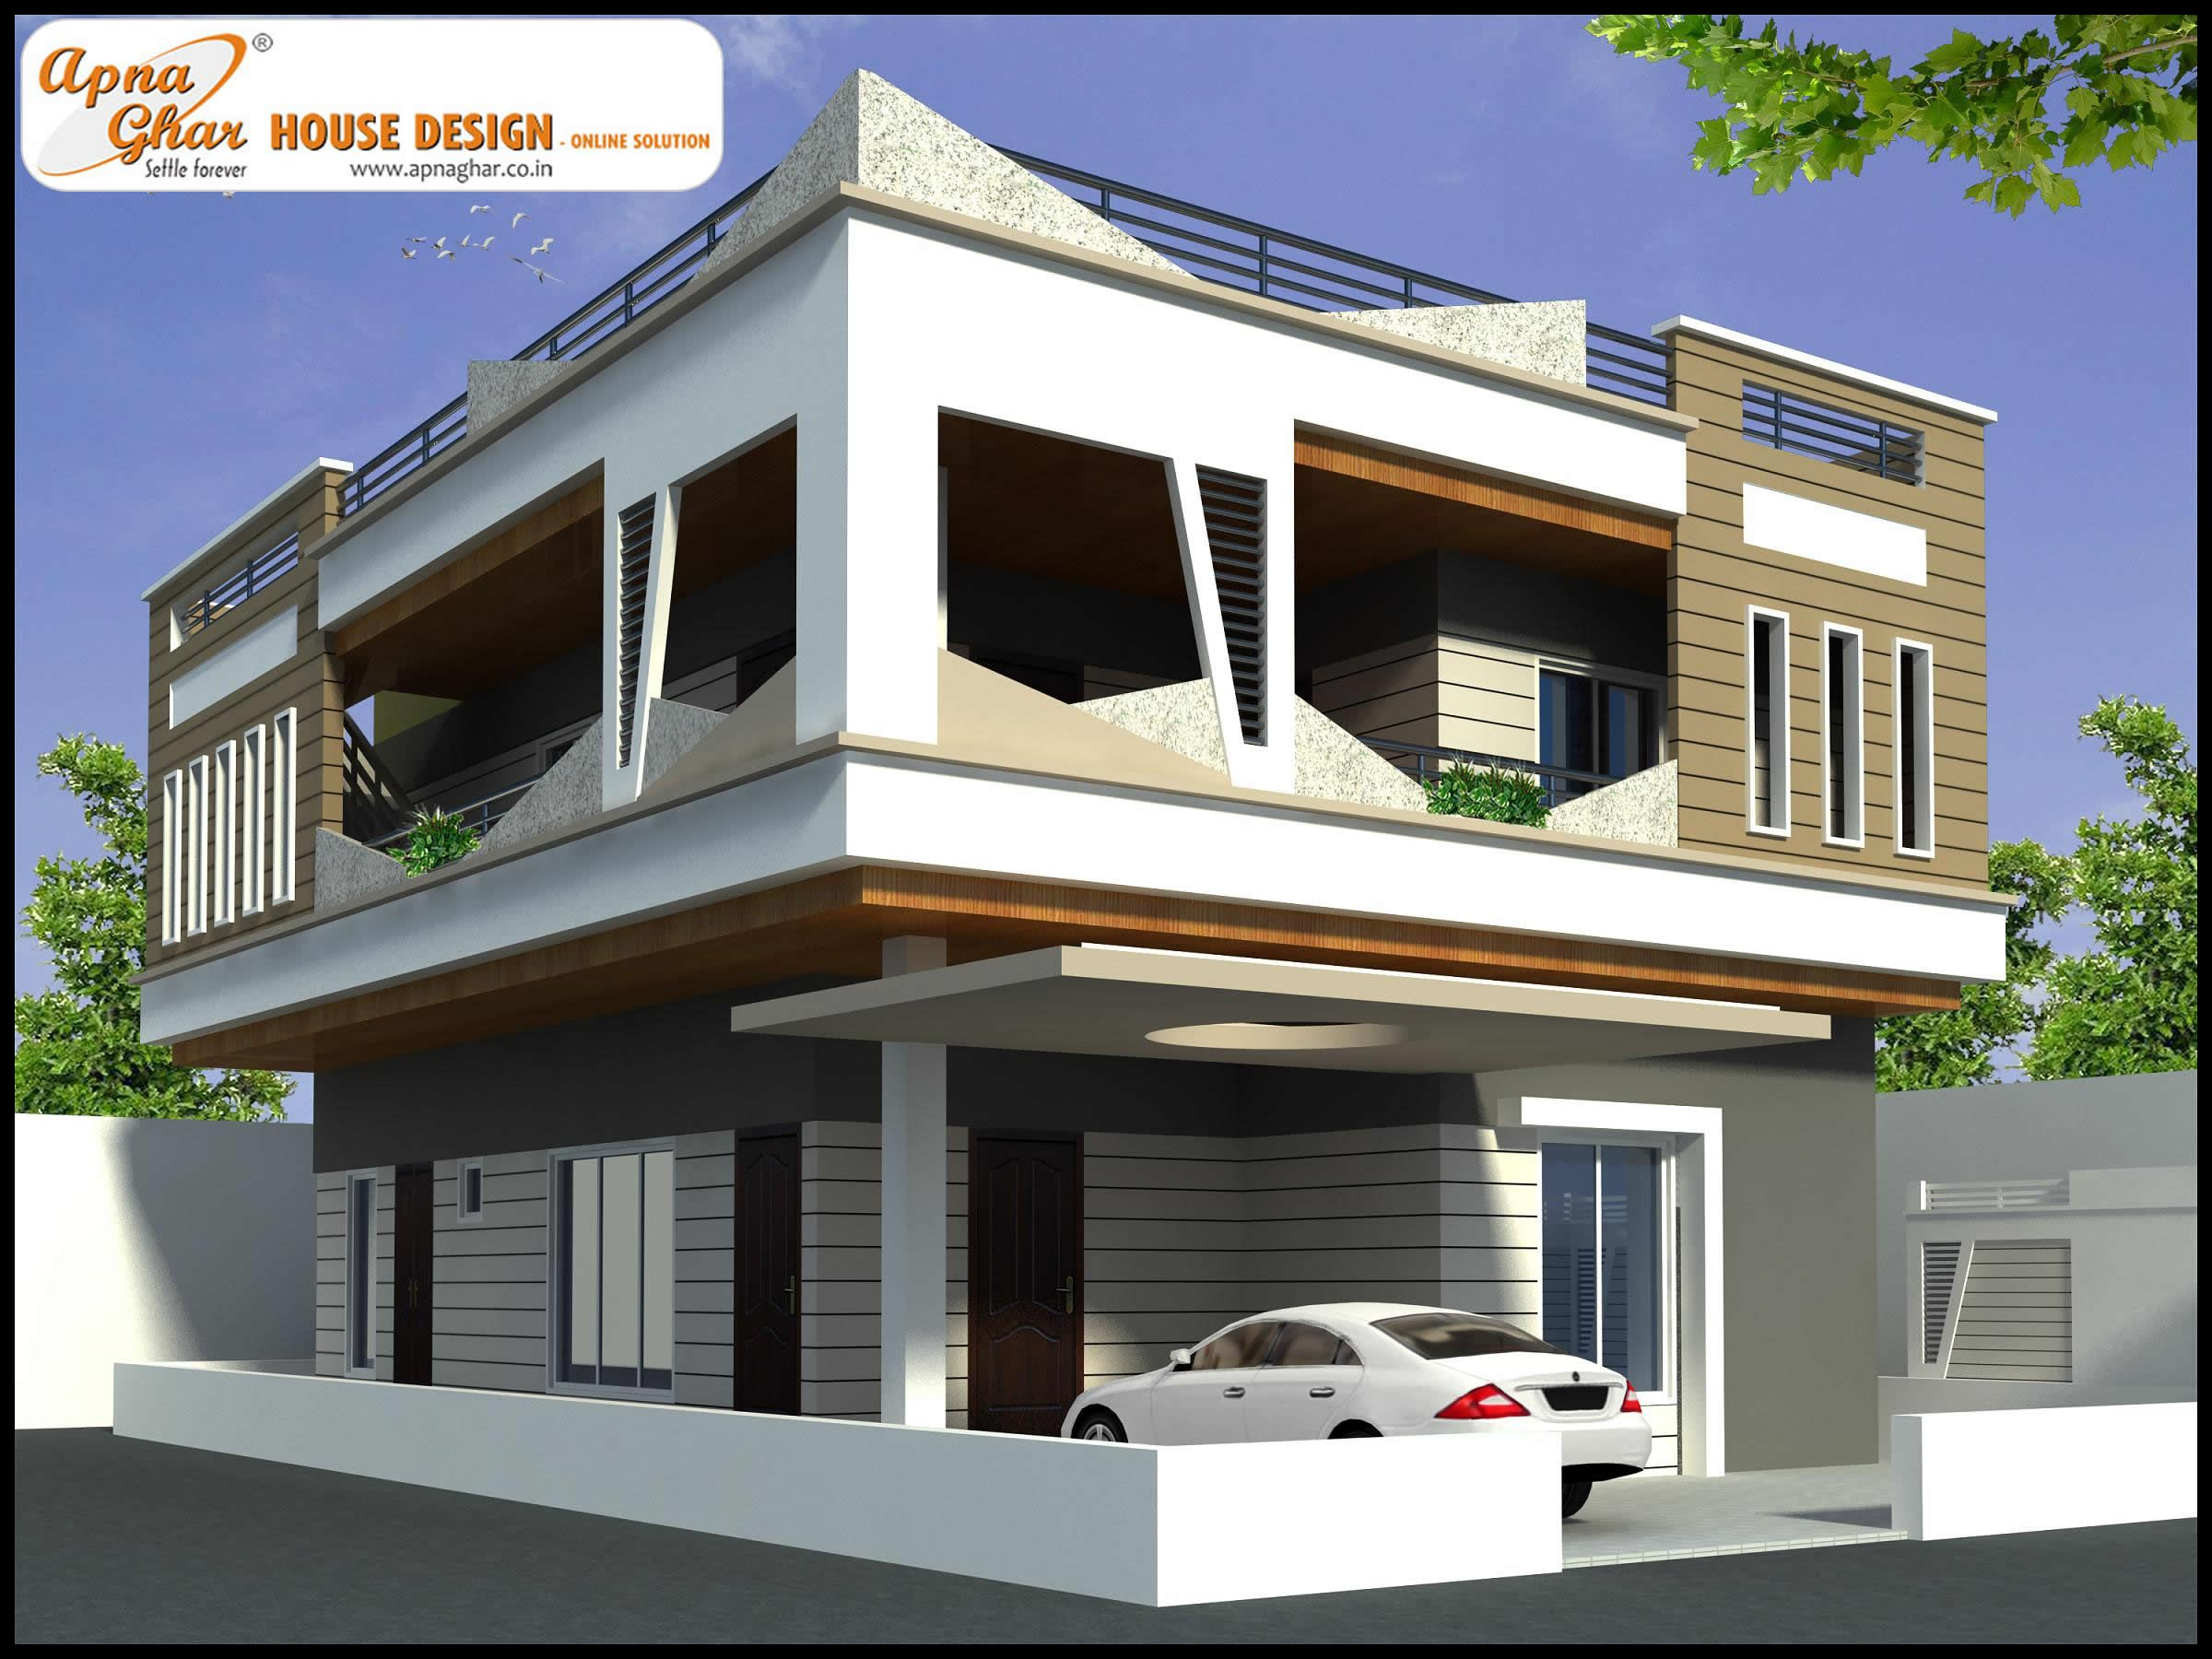 4 bedroom, modern duplex (2 floor) house design. Area: 216 sq mts ...